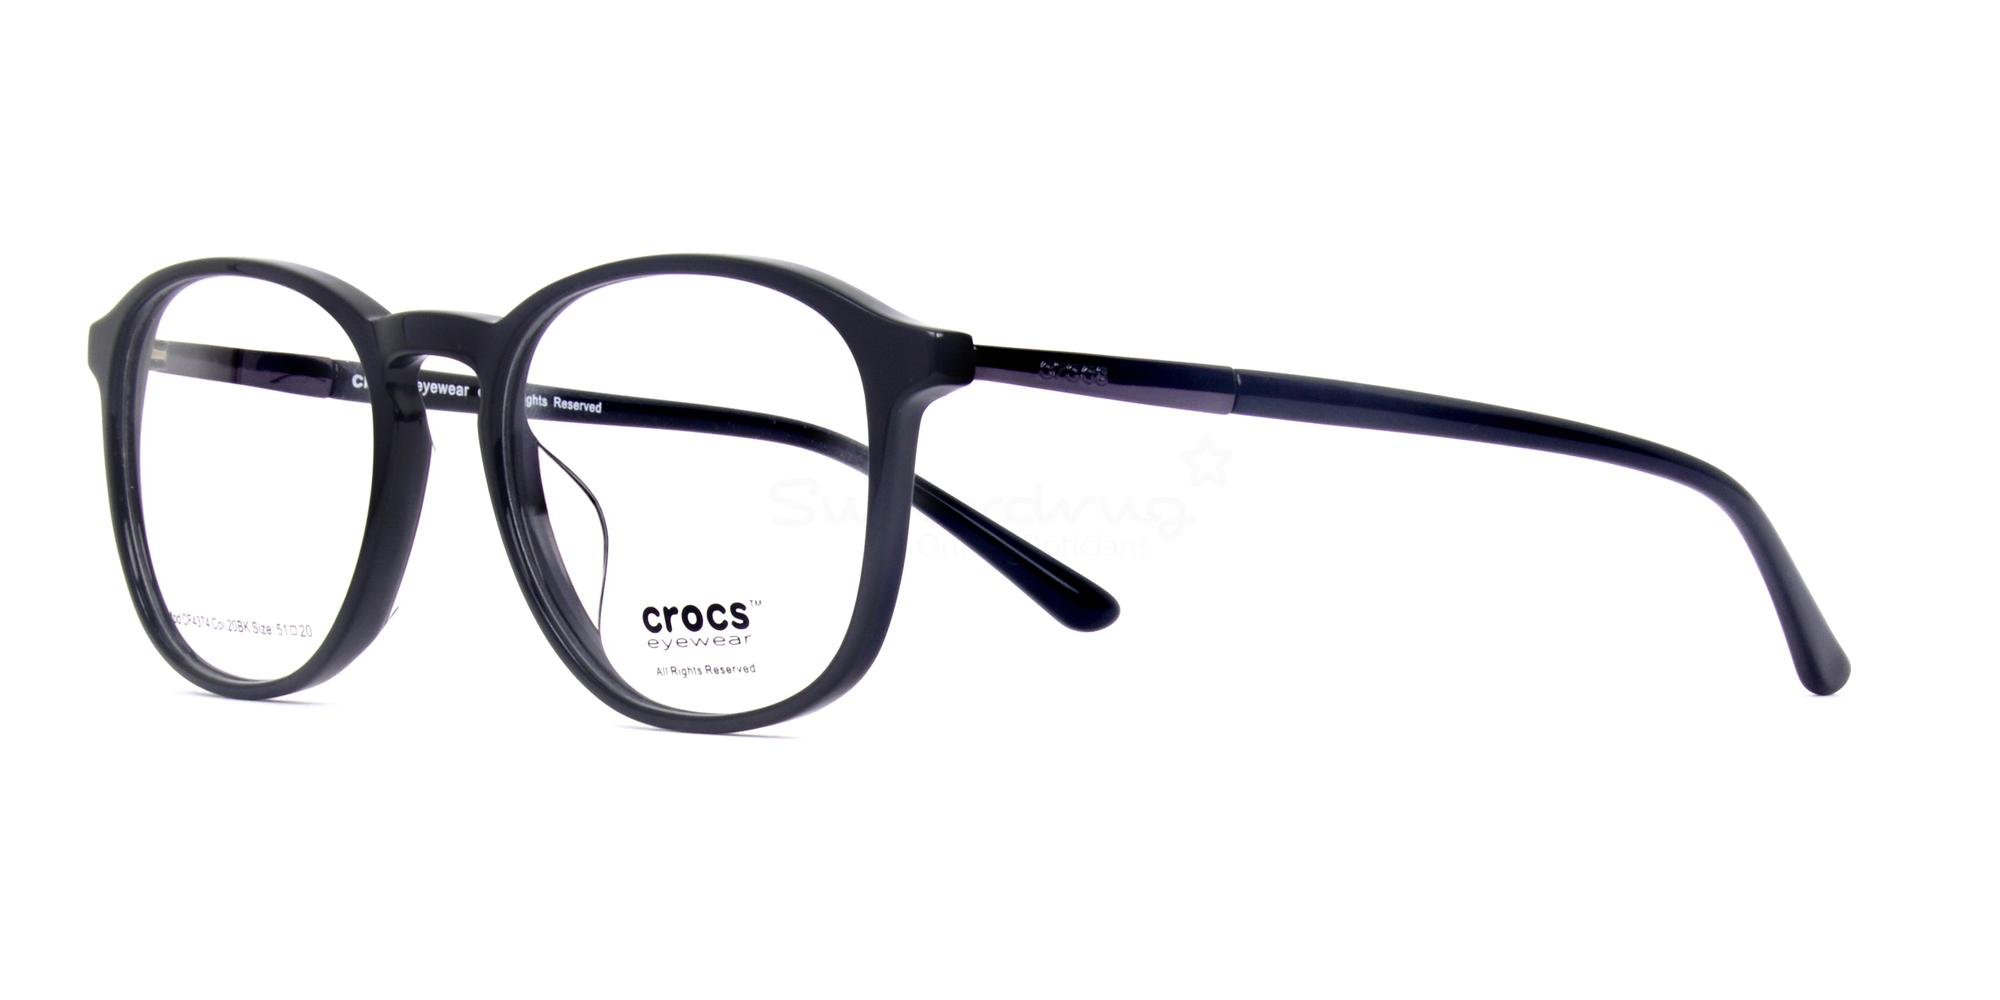 20BK CF4374 Glasses, Crocs Eyewear